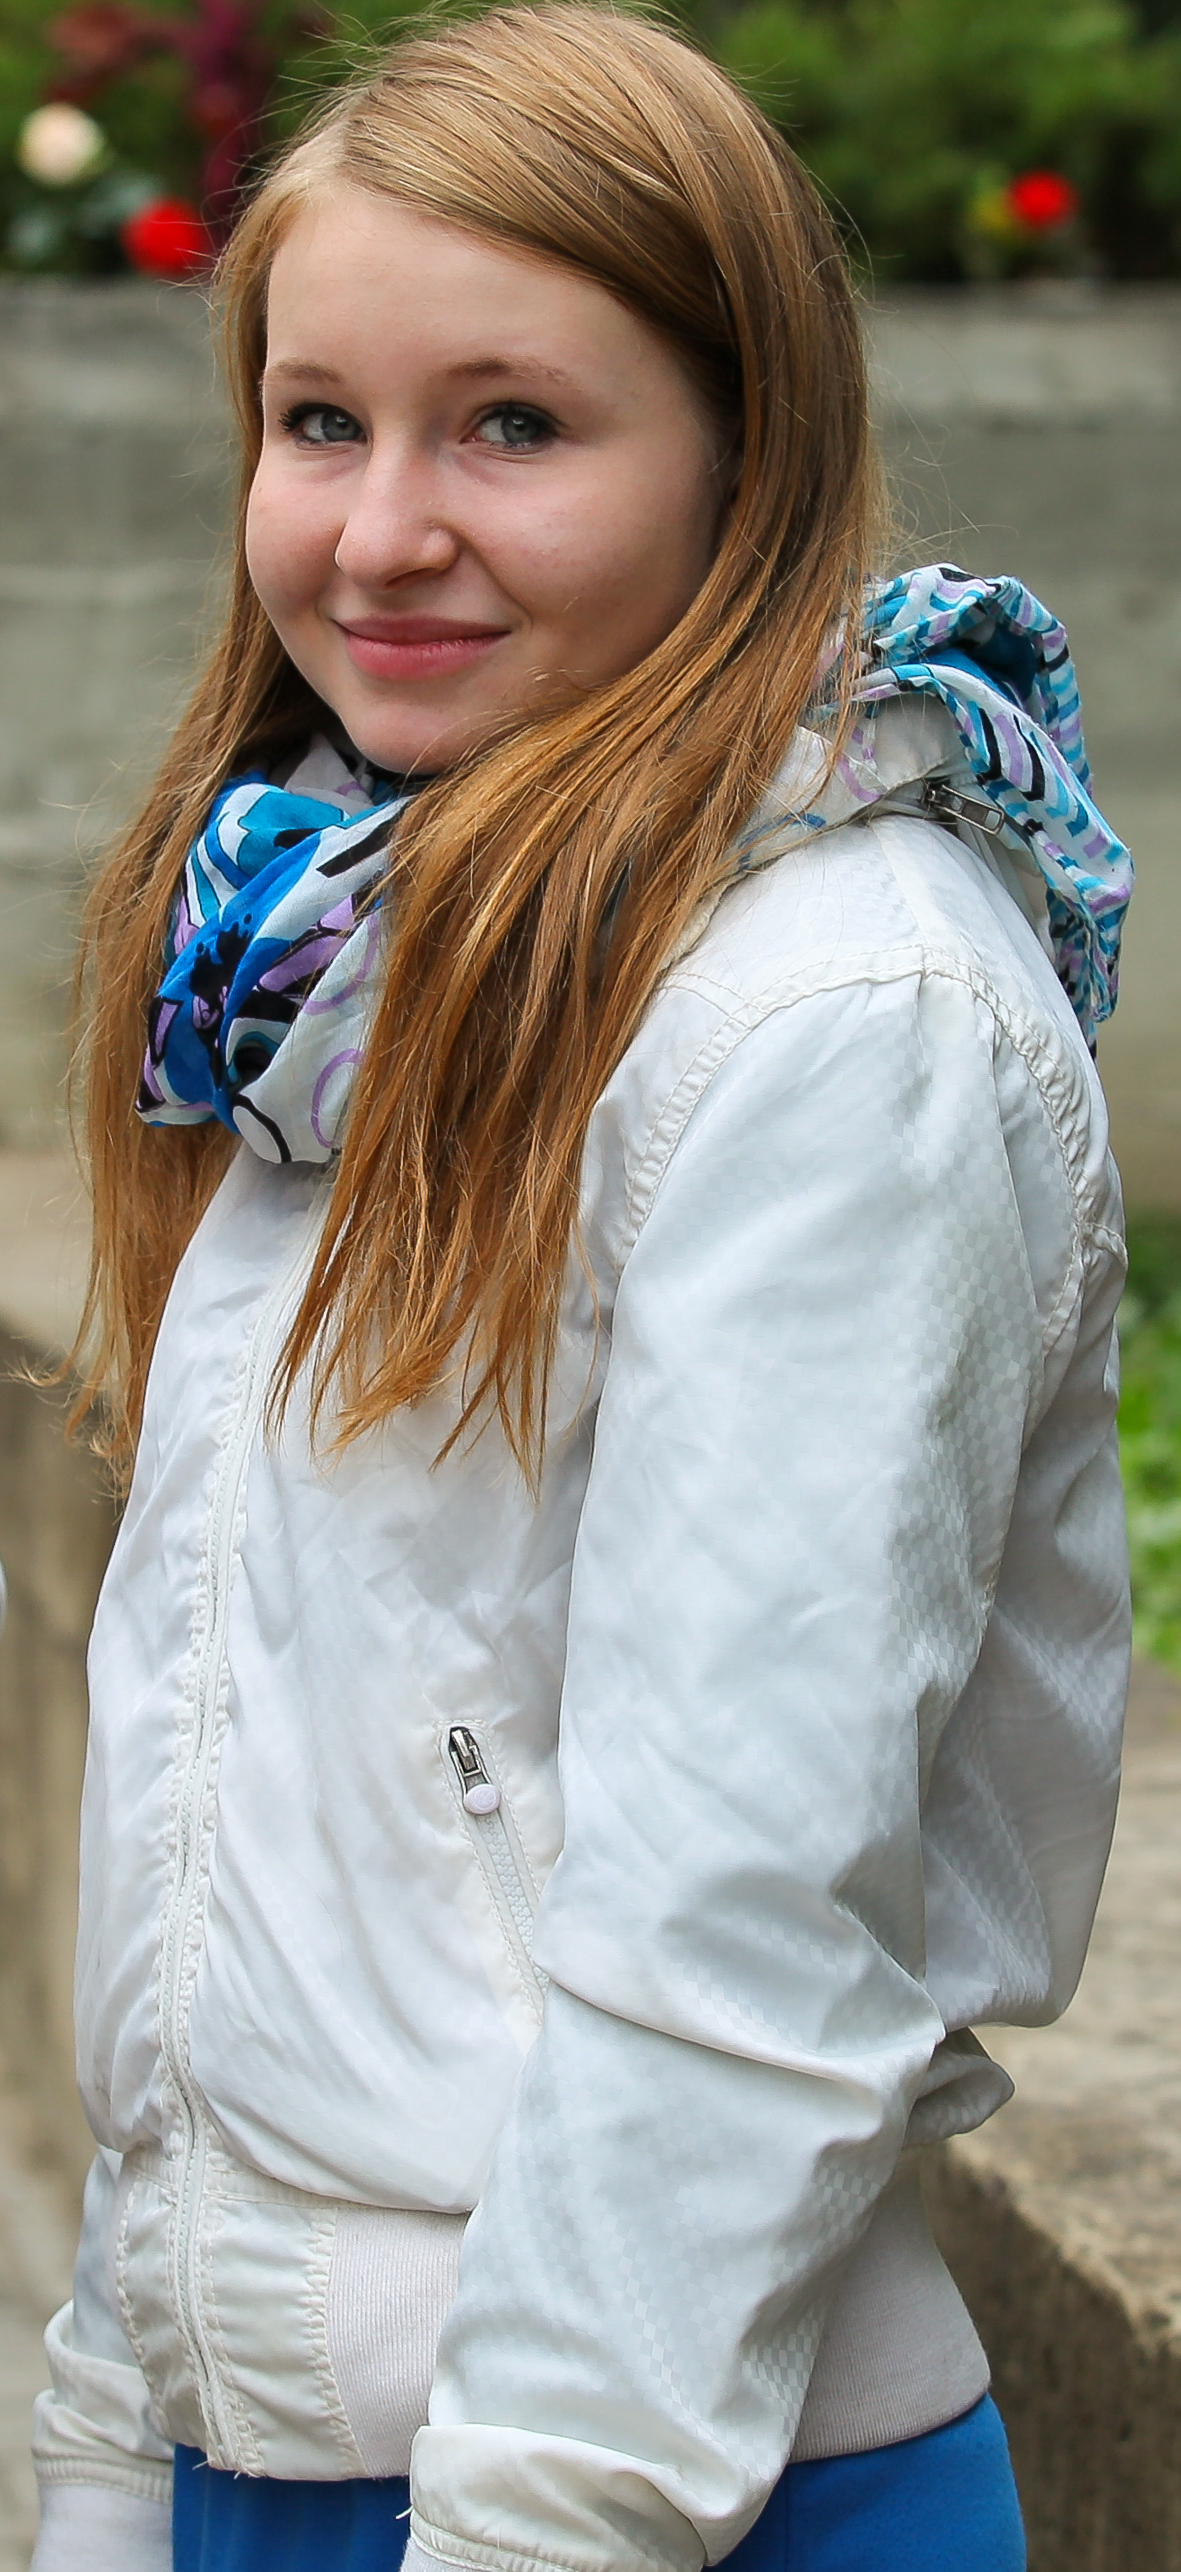 a cute blond girl near a Catholic church photographed in September 2013, picture 2/6